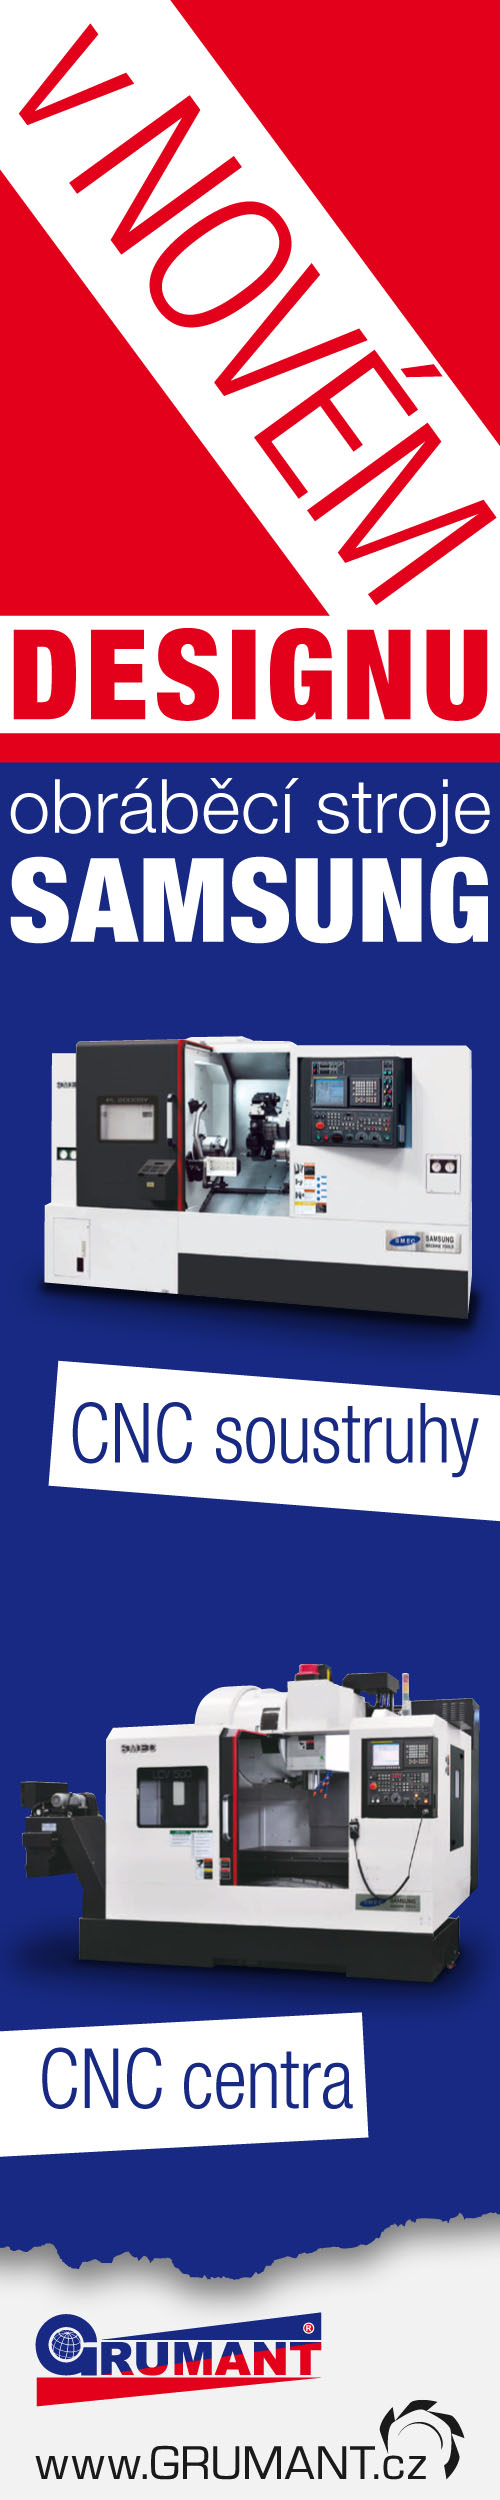 Grumant ND CNC